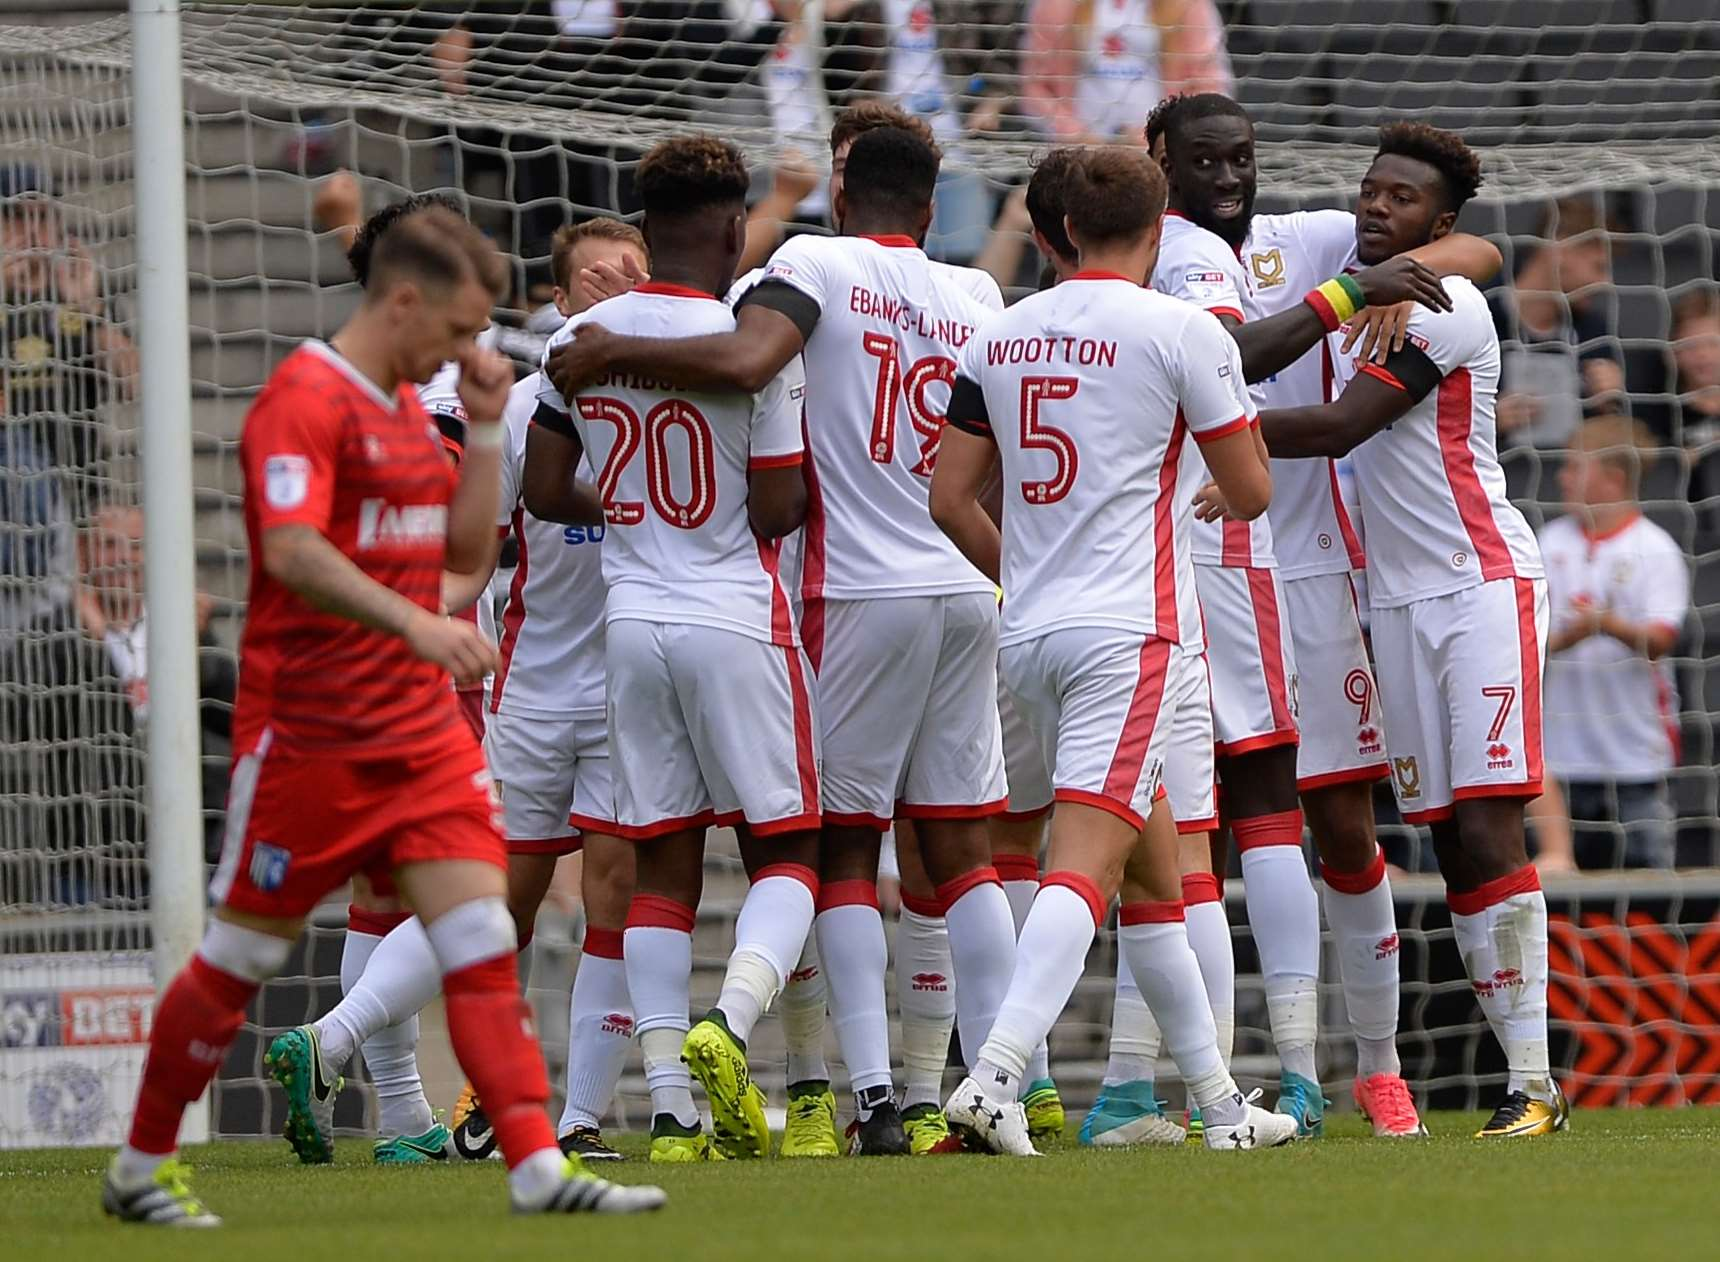 MK Dons celebrate their goal on Saturday. Picture: Ady Kerry